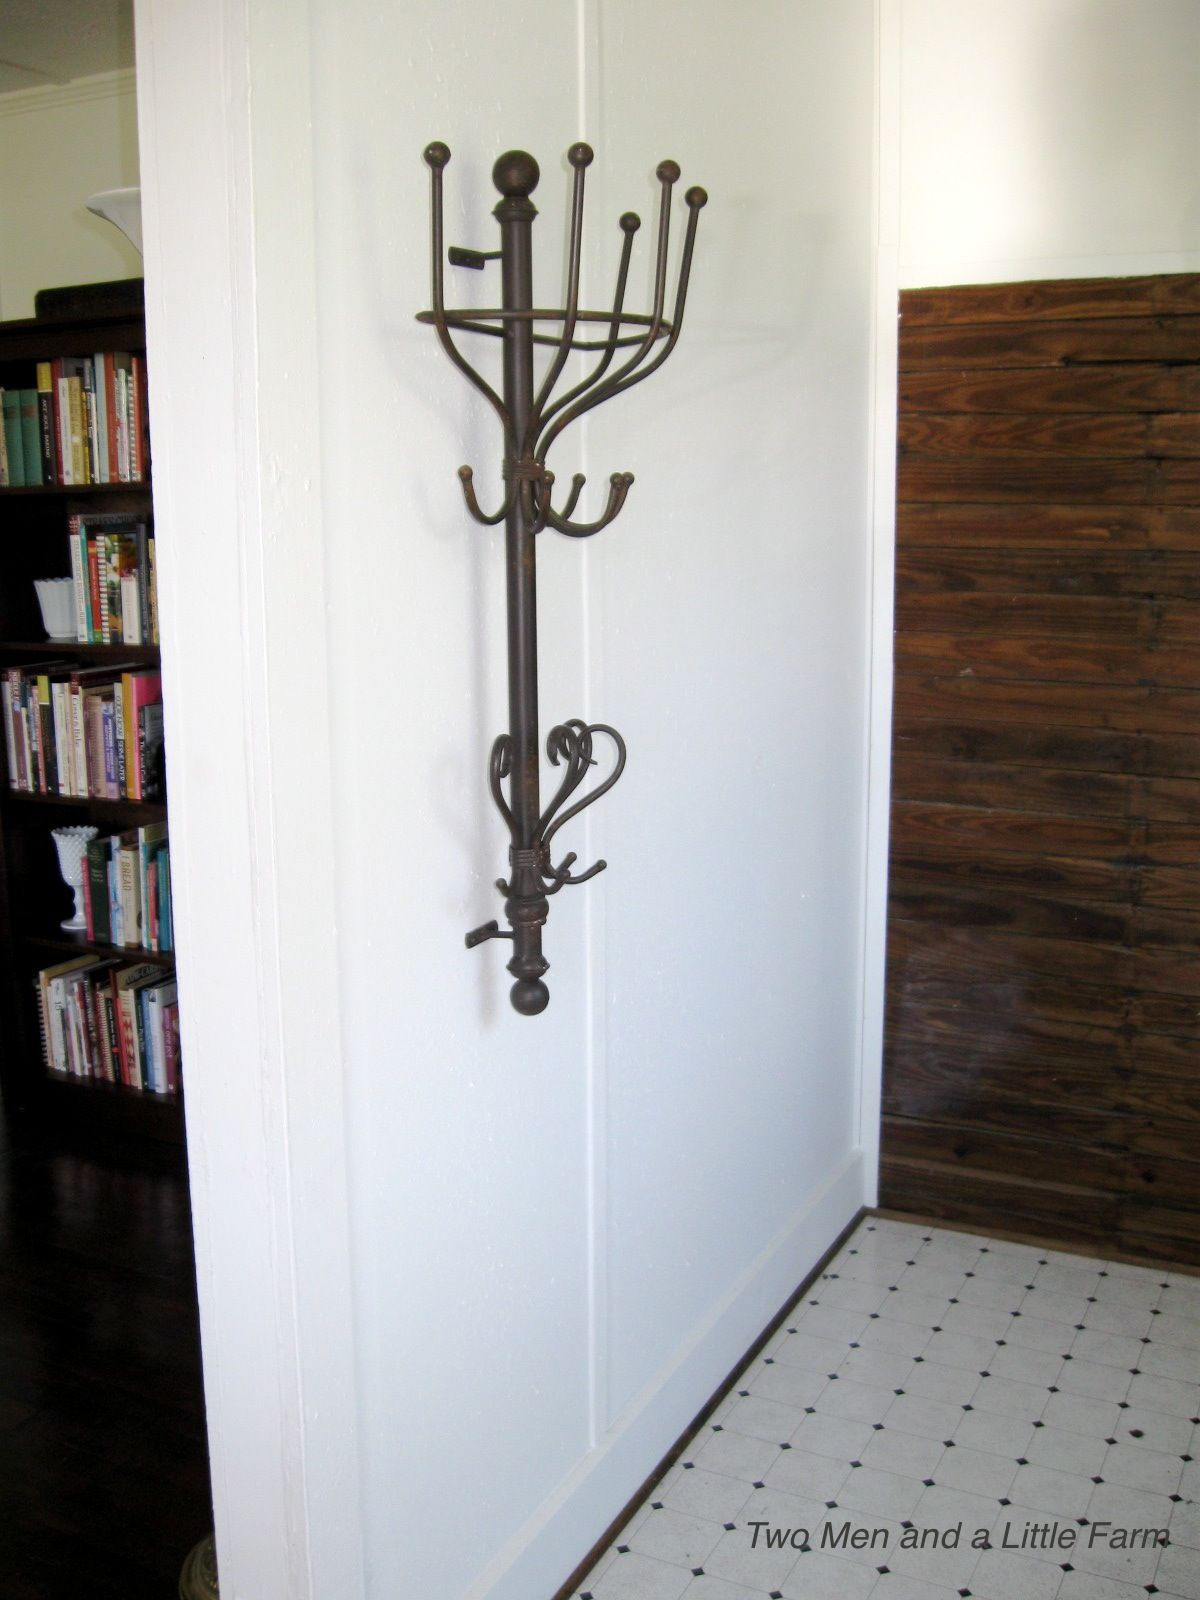 Based On An Antique Coat Tree We Saw In A Paris Bistro Our Wall Mounted Rack Wall Mounted Coat Rack Coat Rack Coat Rack Wall Wall mounted coat tree